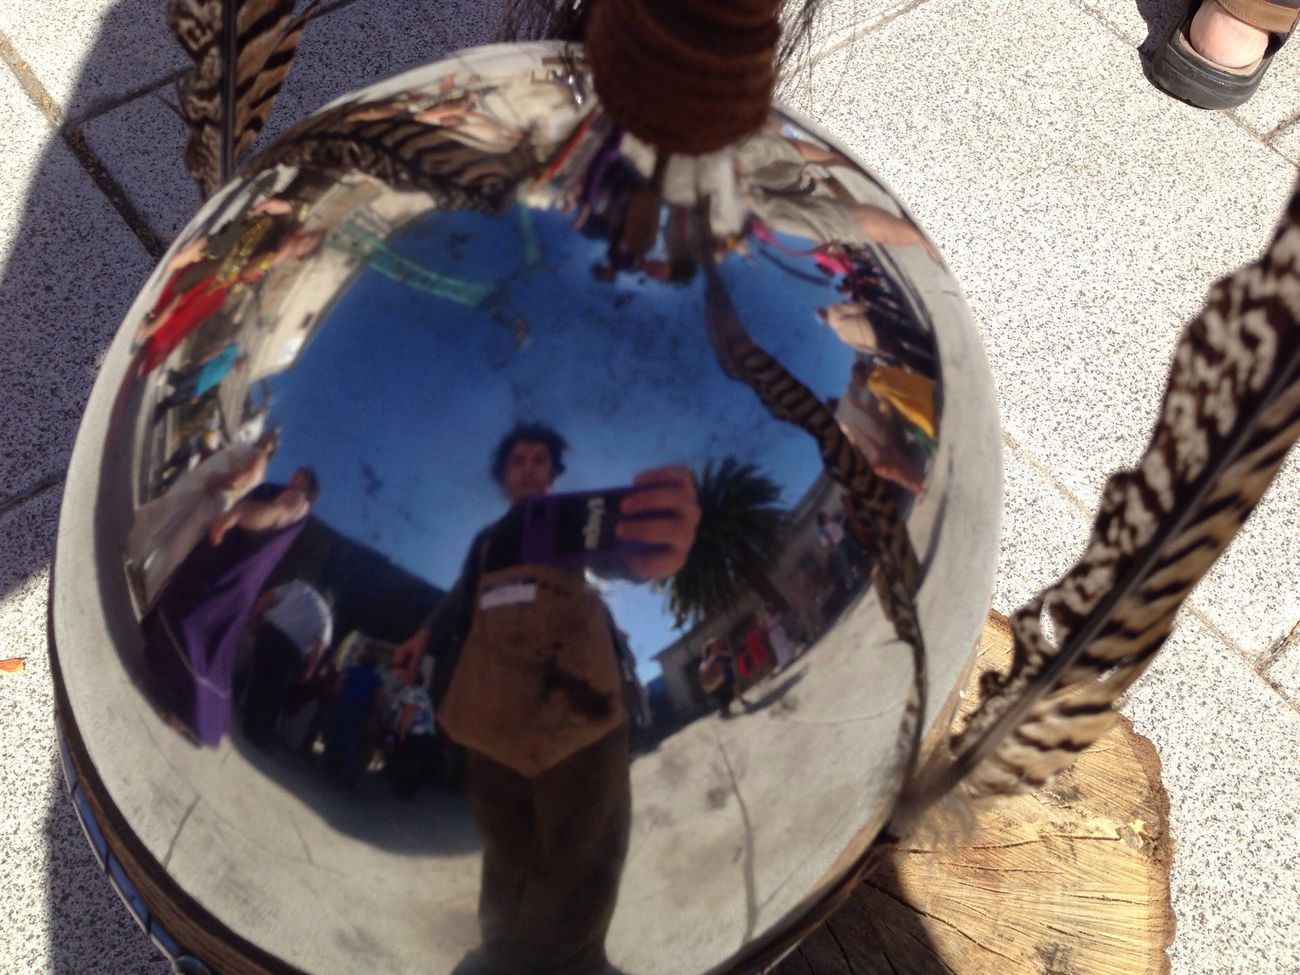 Arde Lucus EyeEm Meetup is here! Selfie Reflection 165. Helmet reflection One Photo A Day 2014